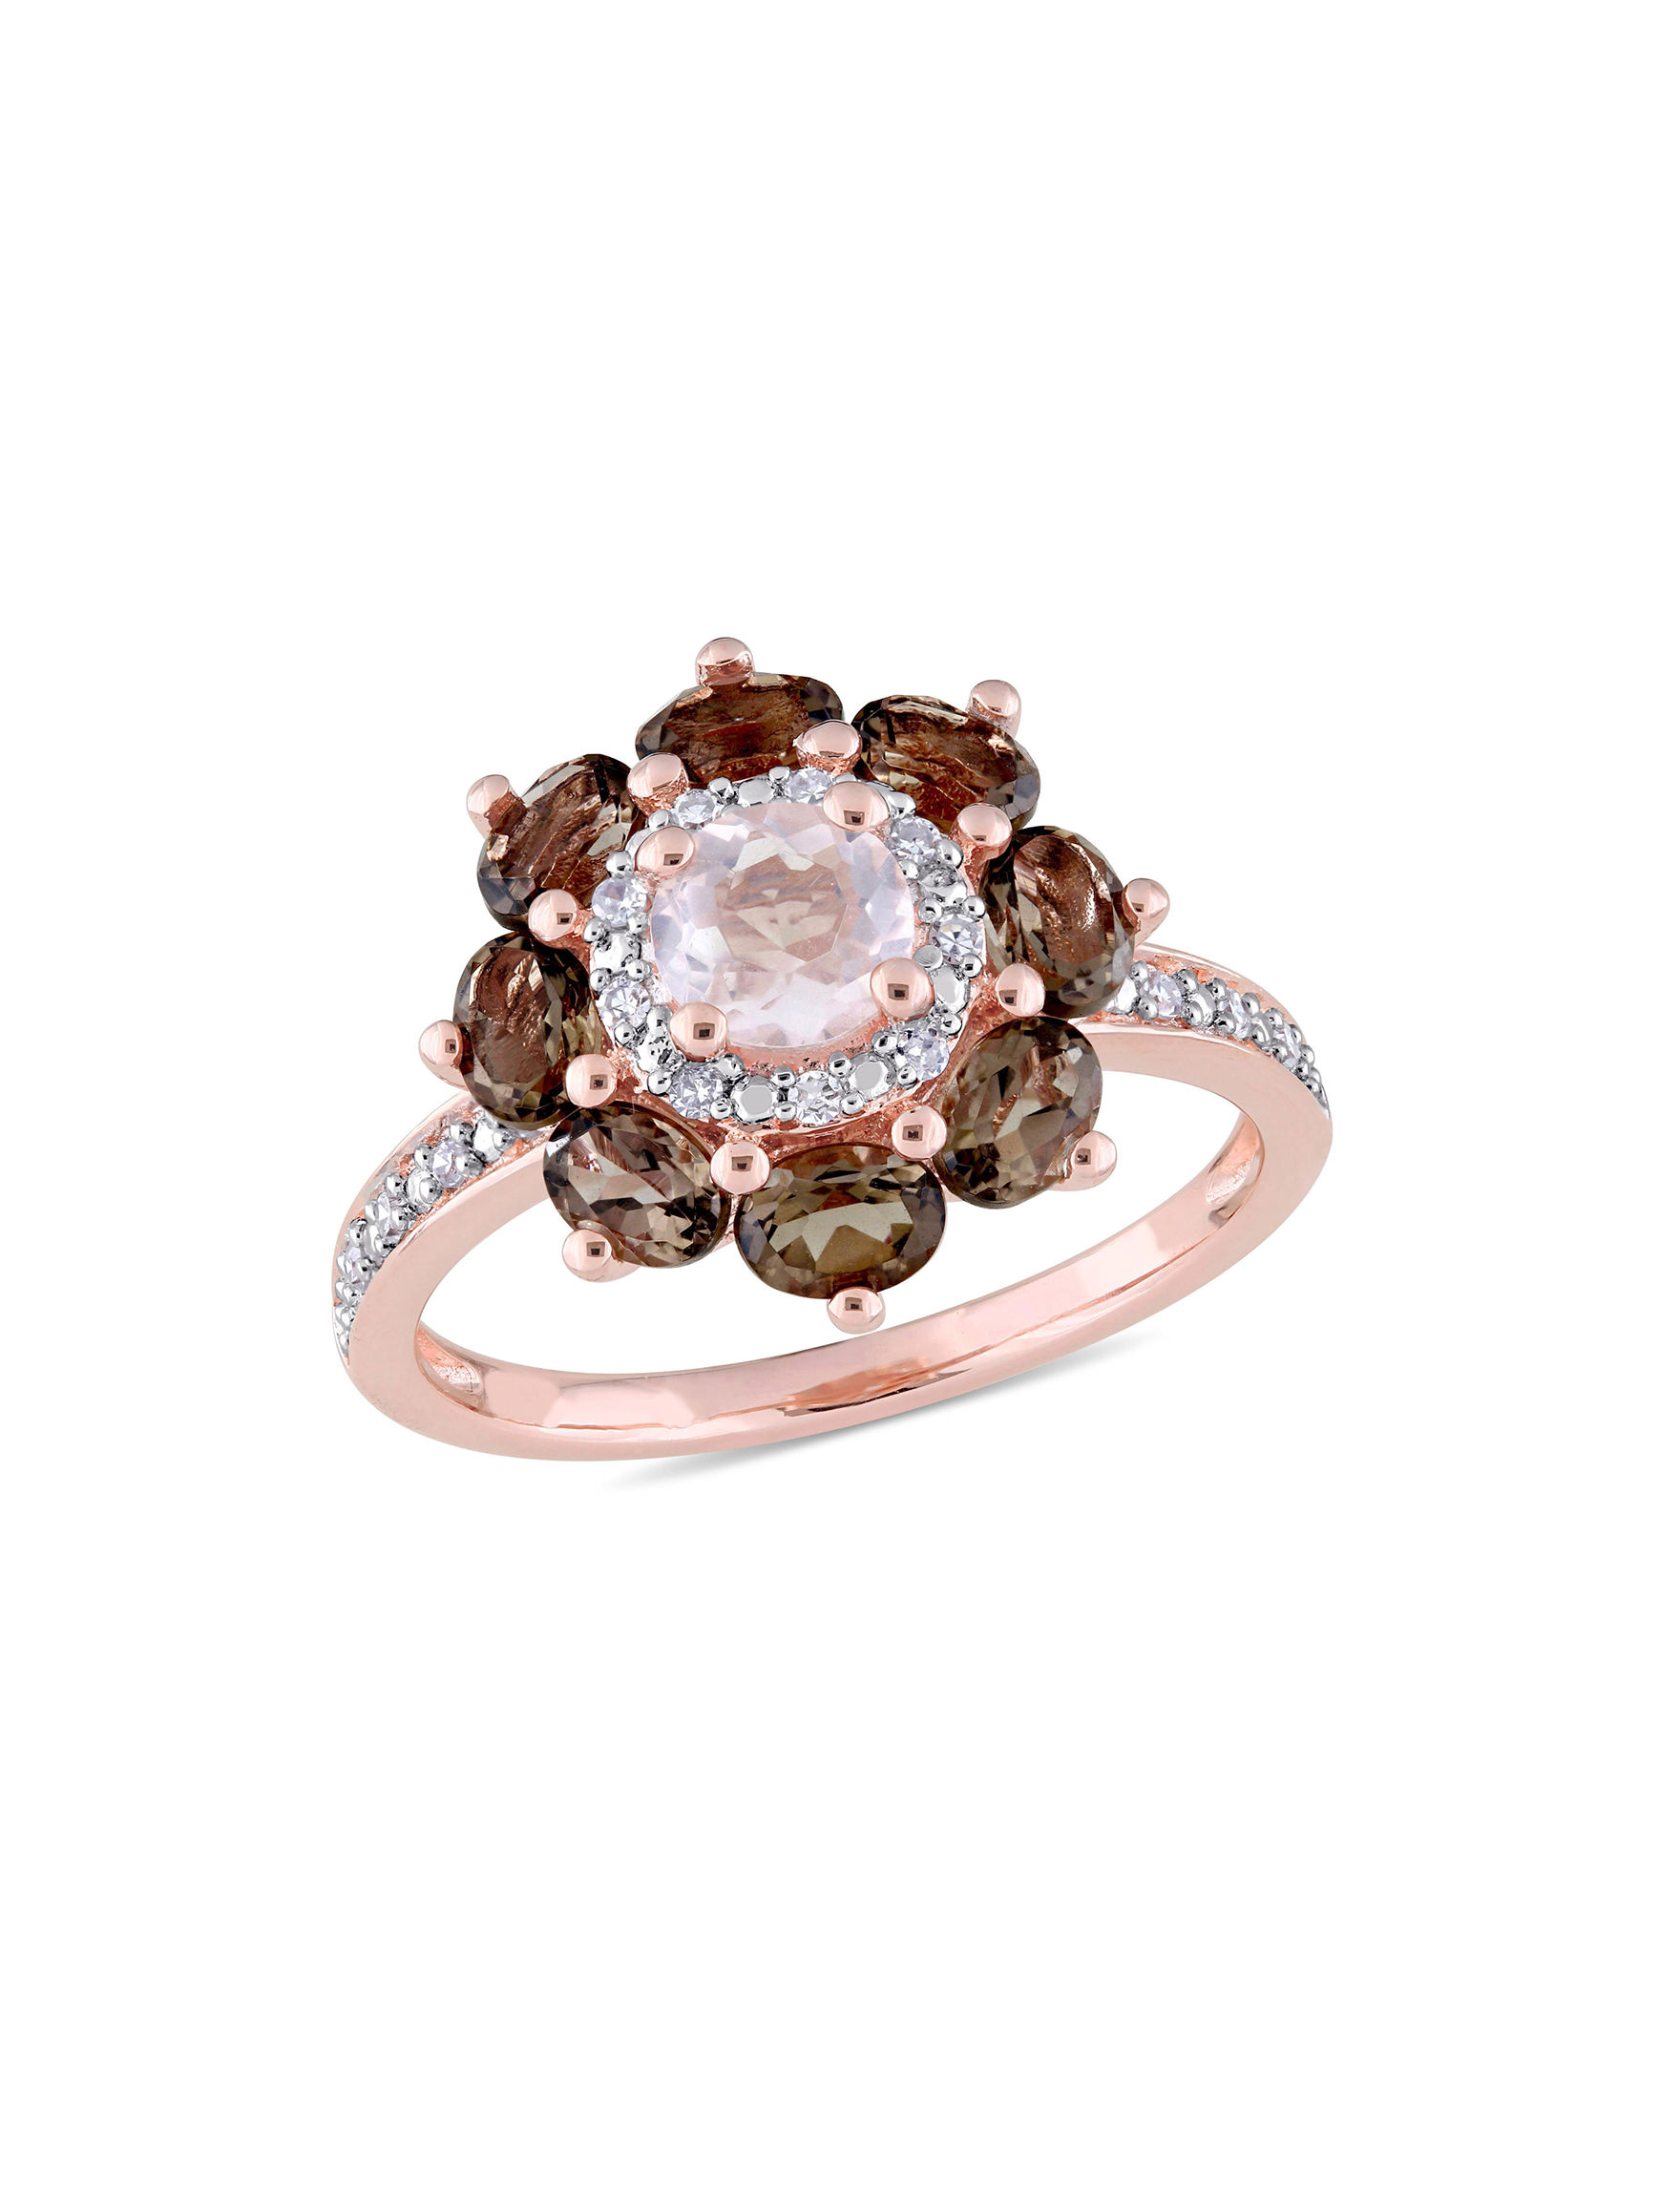 Laura Ashley Rose Gold Rings Fine Jewelry